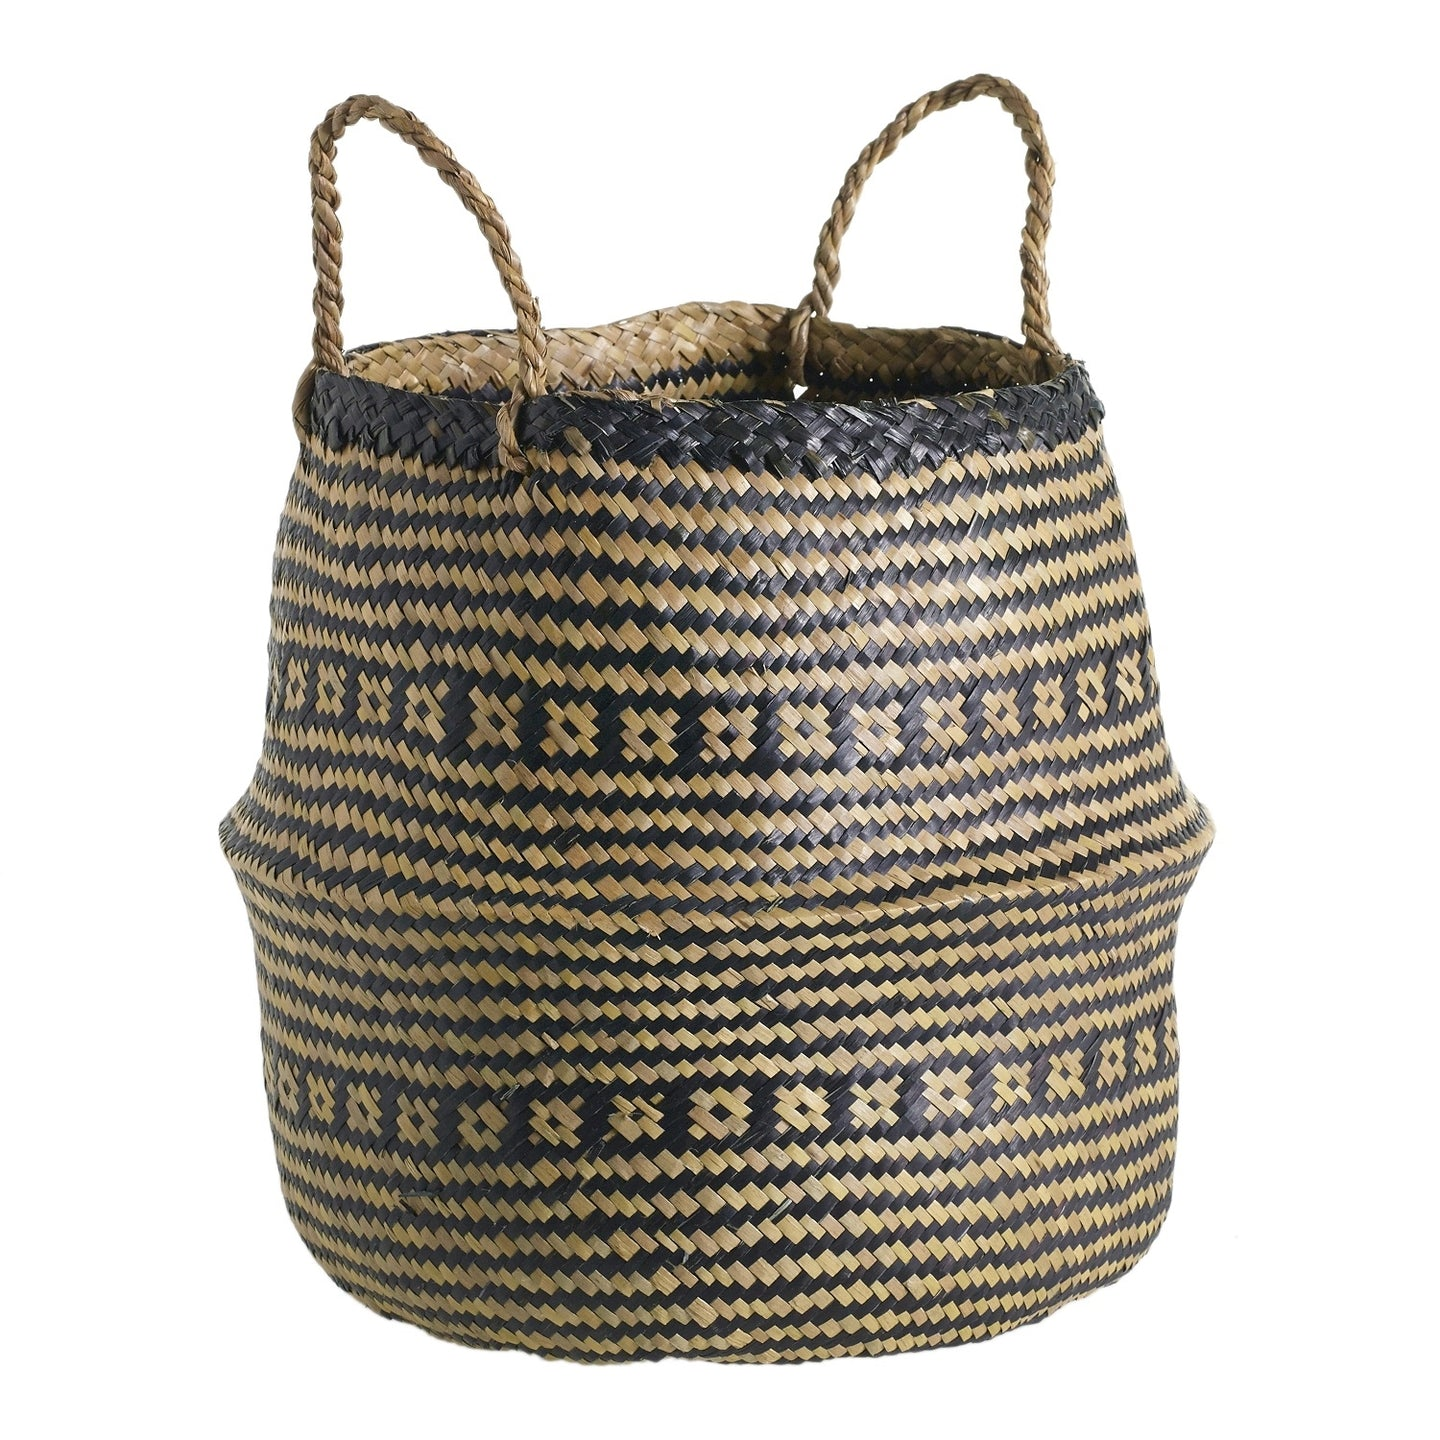 Benni Natural Fiber Basket Medium